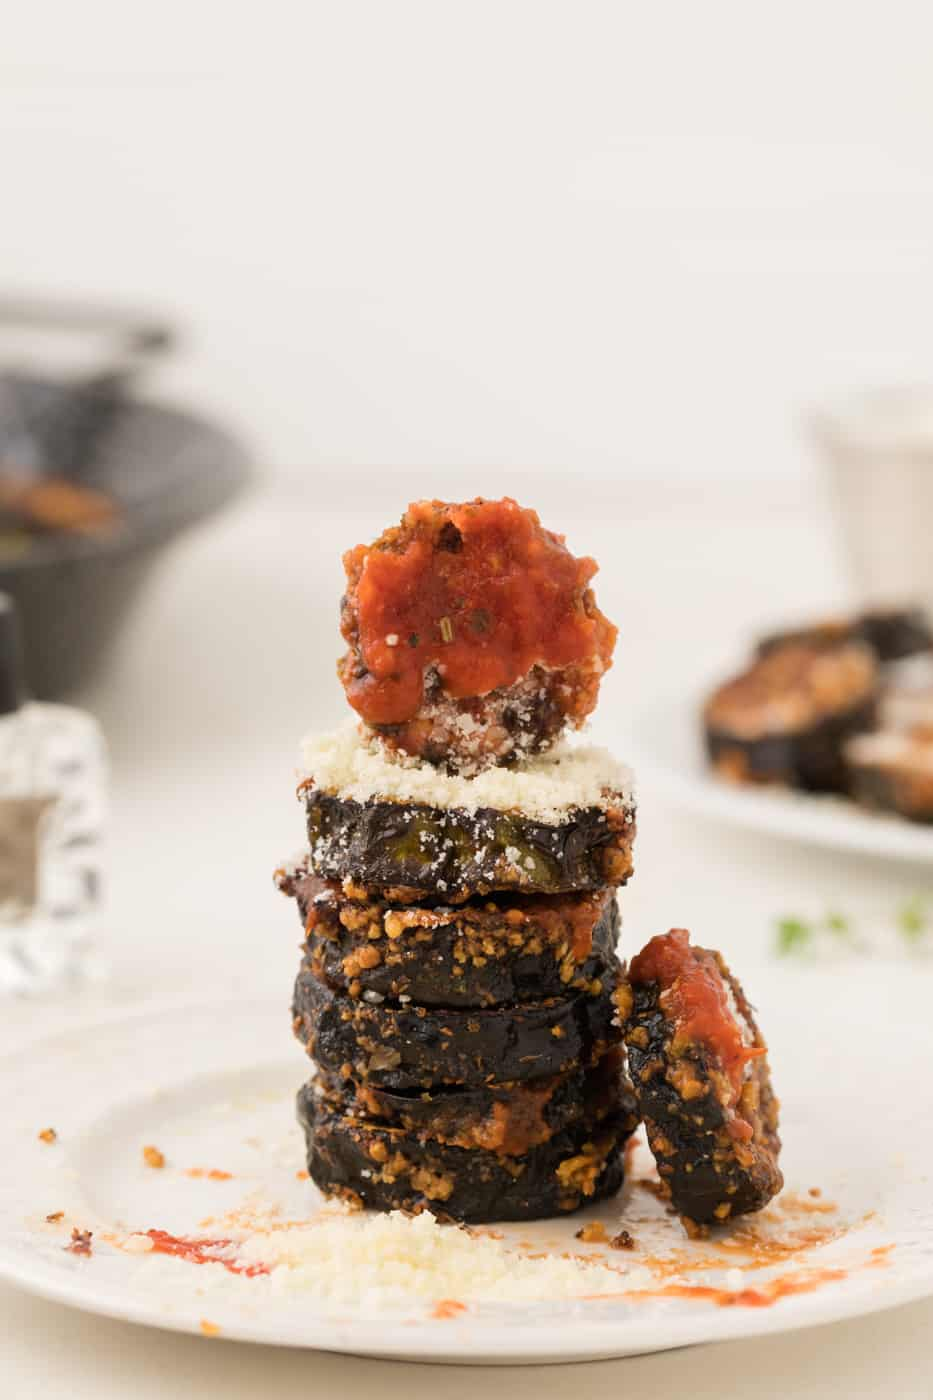 stack of cooked air fryer zucchini slices with marinara and parmesan